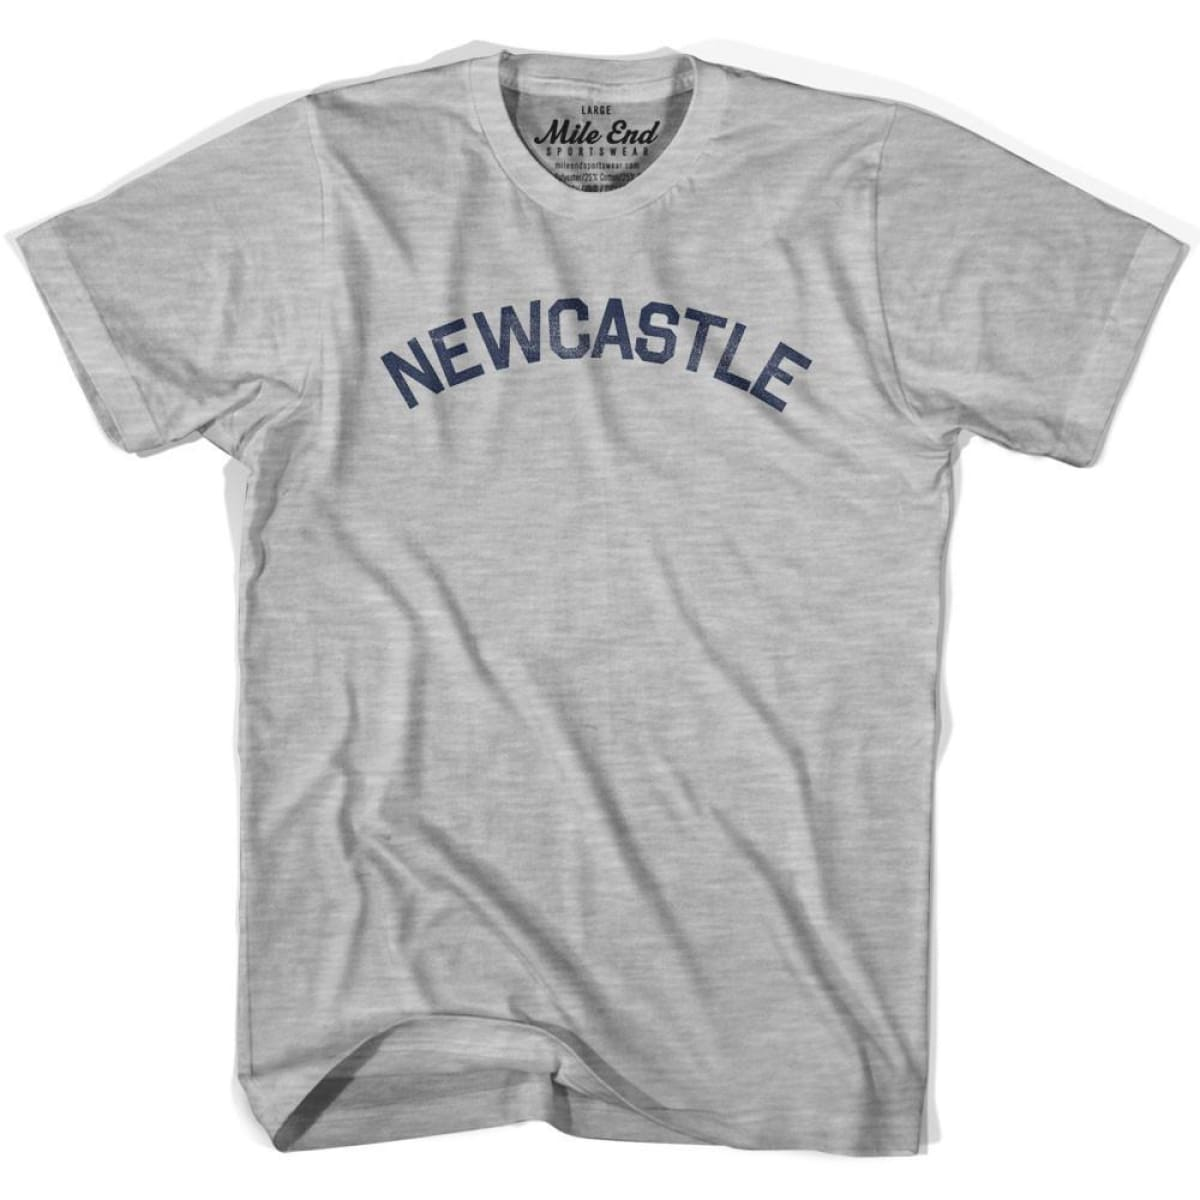 Newcastle City Vintage T-shirt - Grey Heather / Youth X-Small - Mile End City